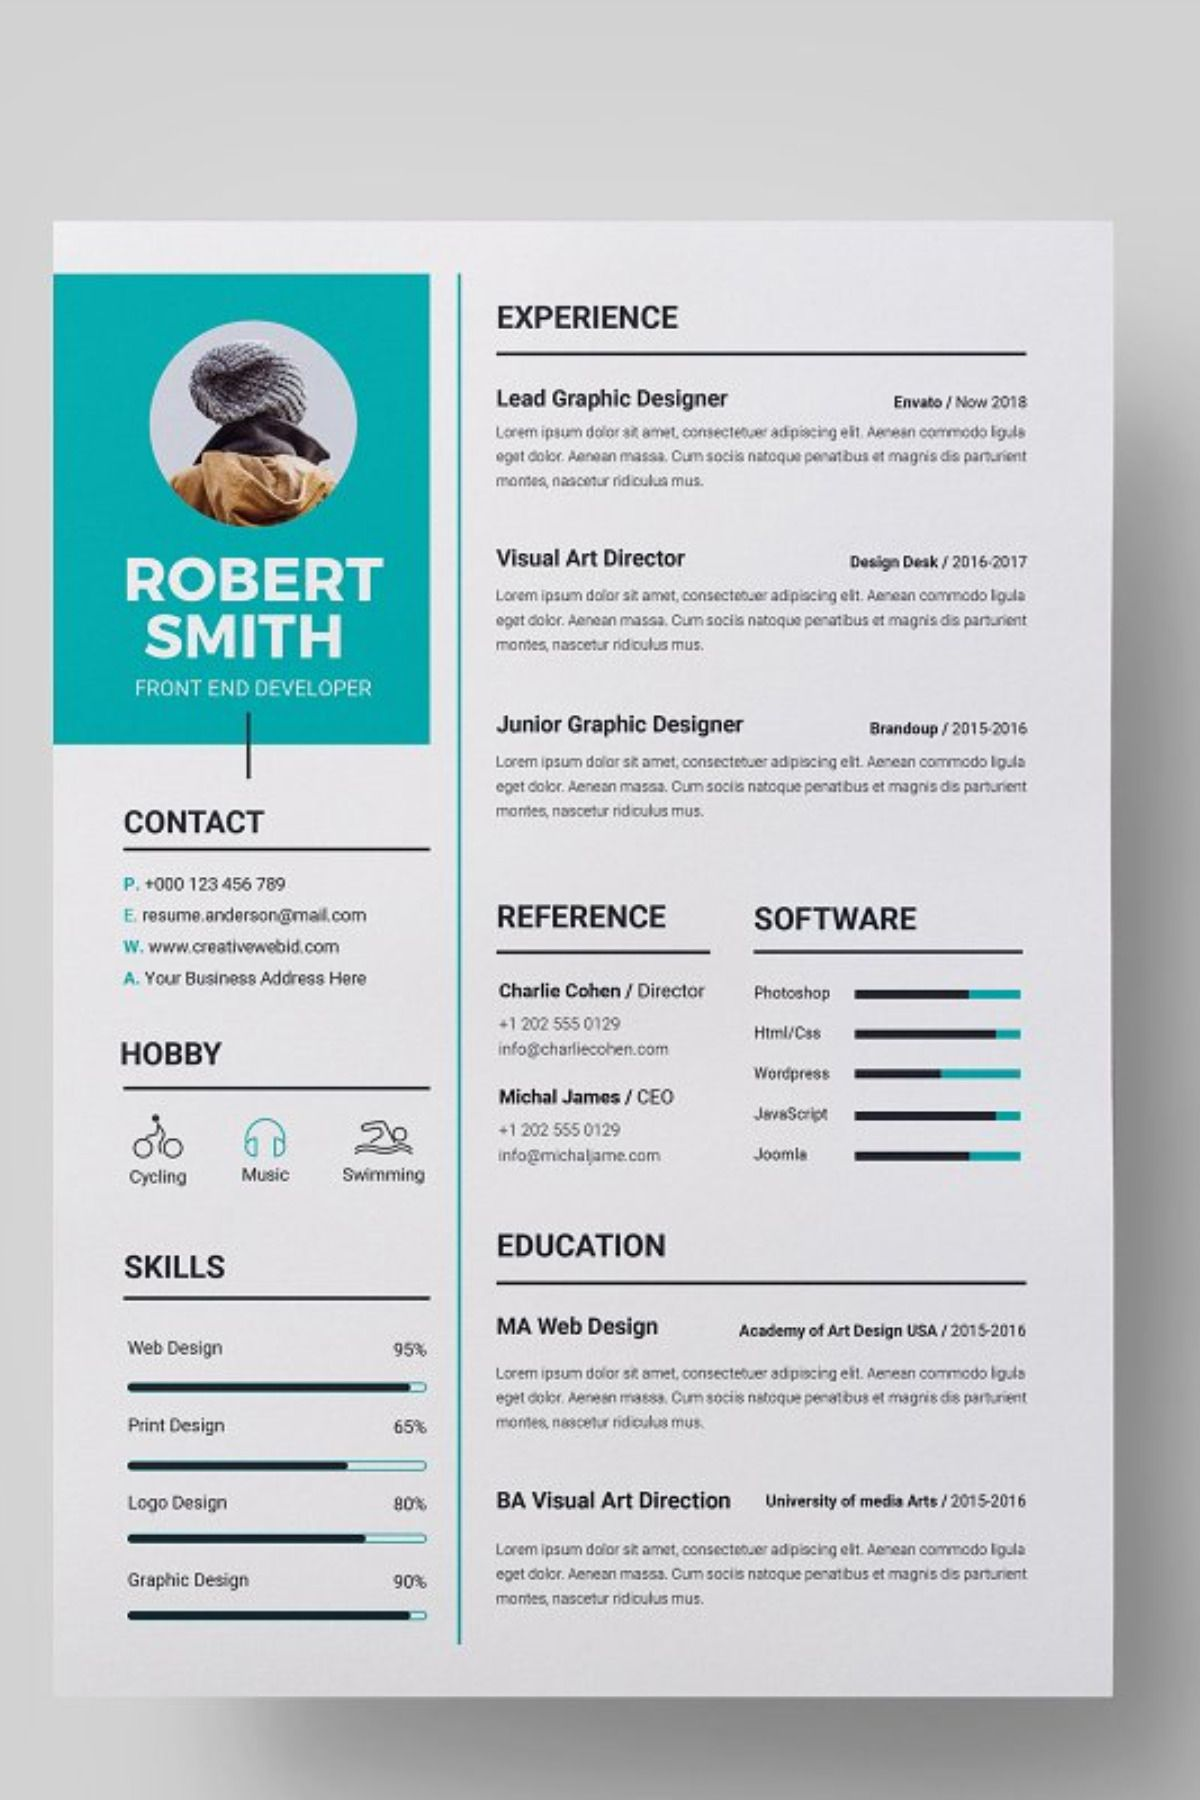 Resume Resume references, Resume template, Cv template word